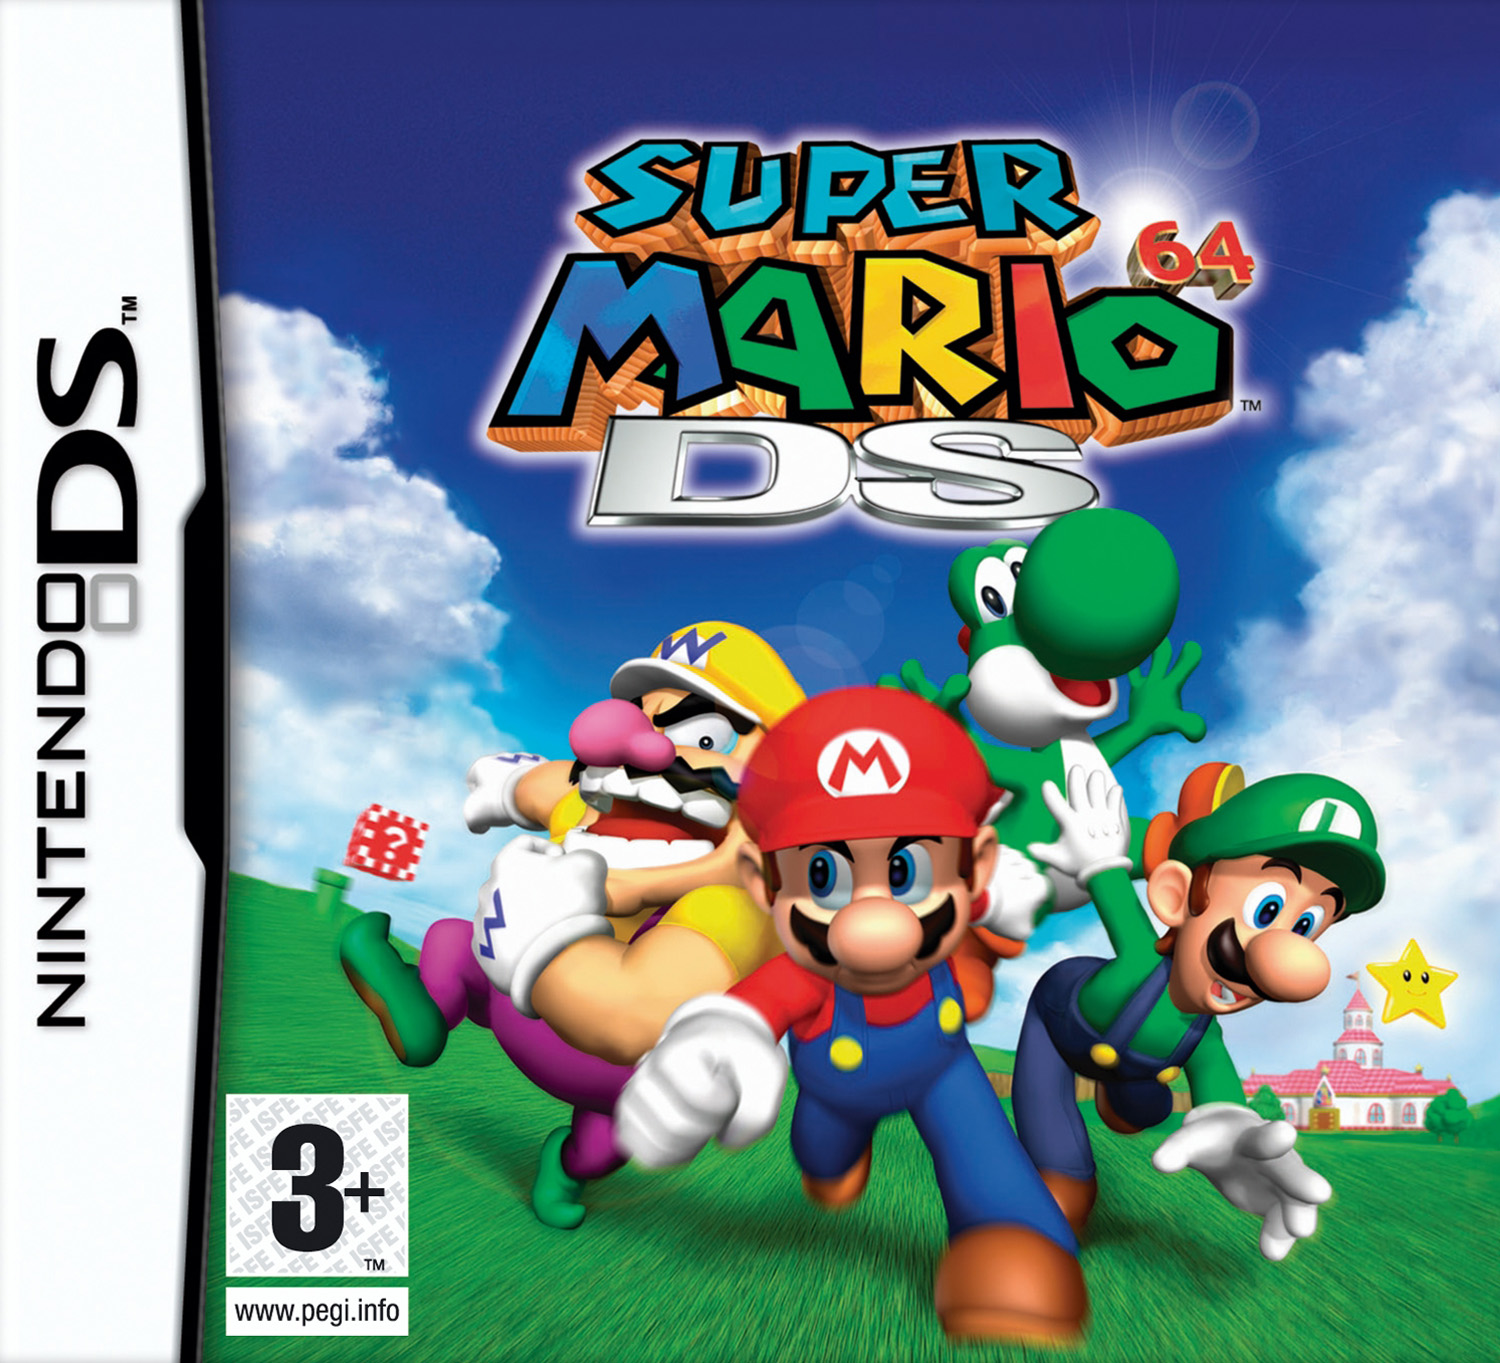 Super Mario 64 Ds Eu M5 Rom Download For Nintendo Ds Nds Rom Hustler